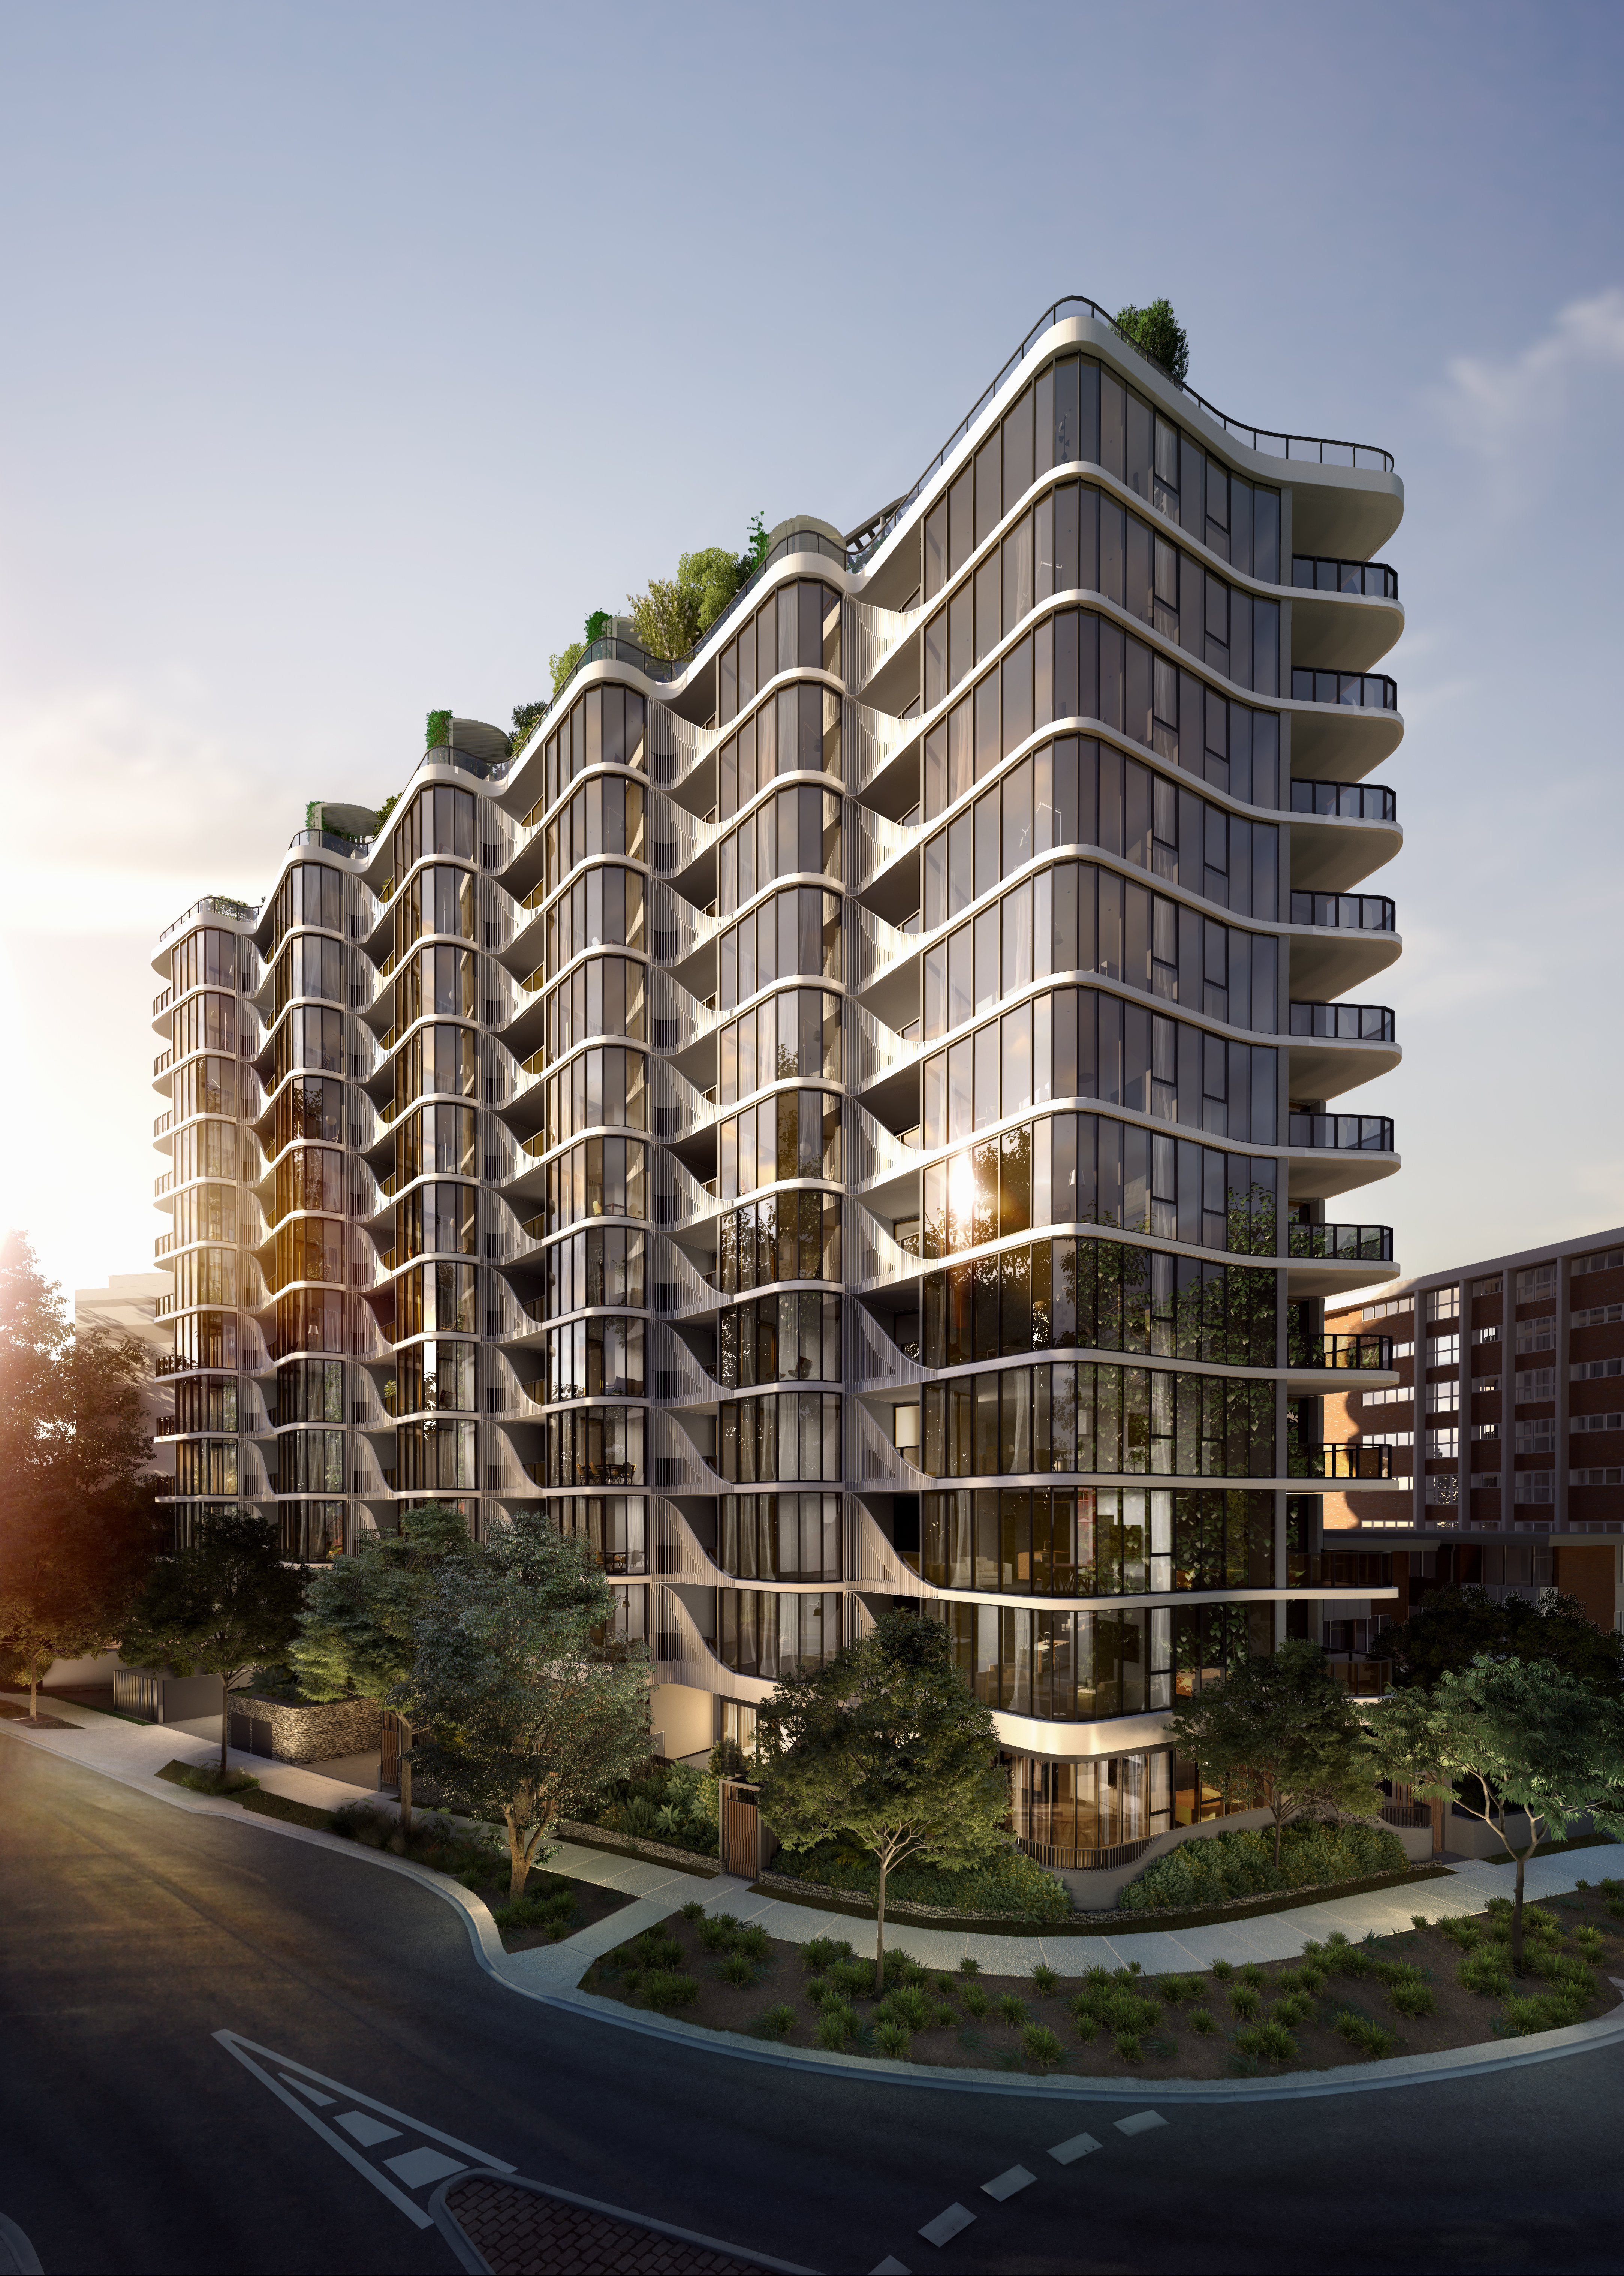 Valencia-Rothelowman-The Local Project-Australian Architecture & Design-Image 1